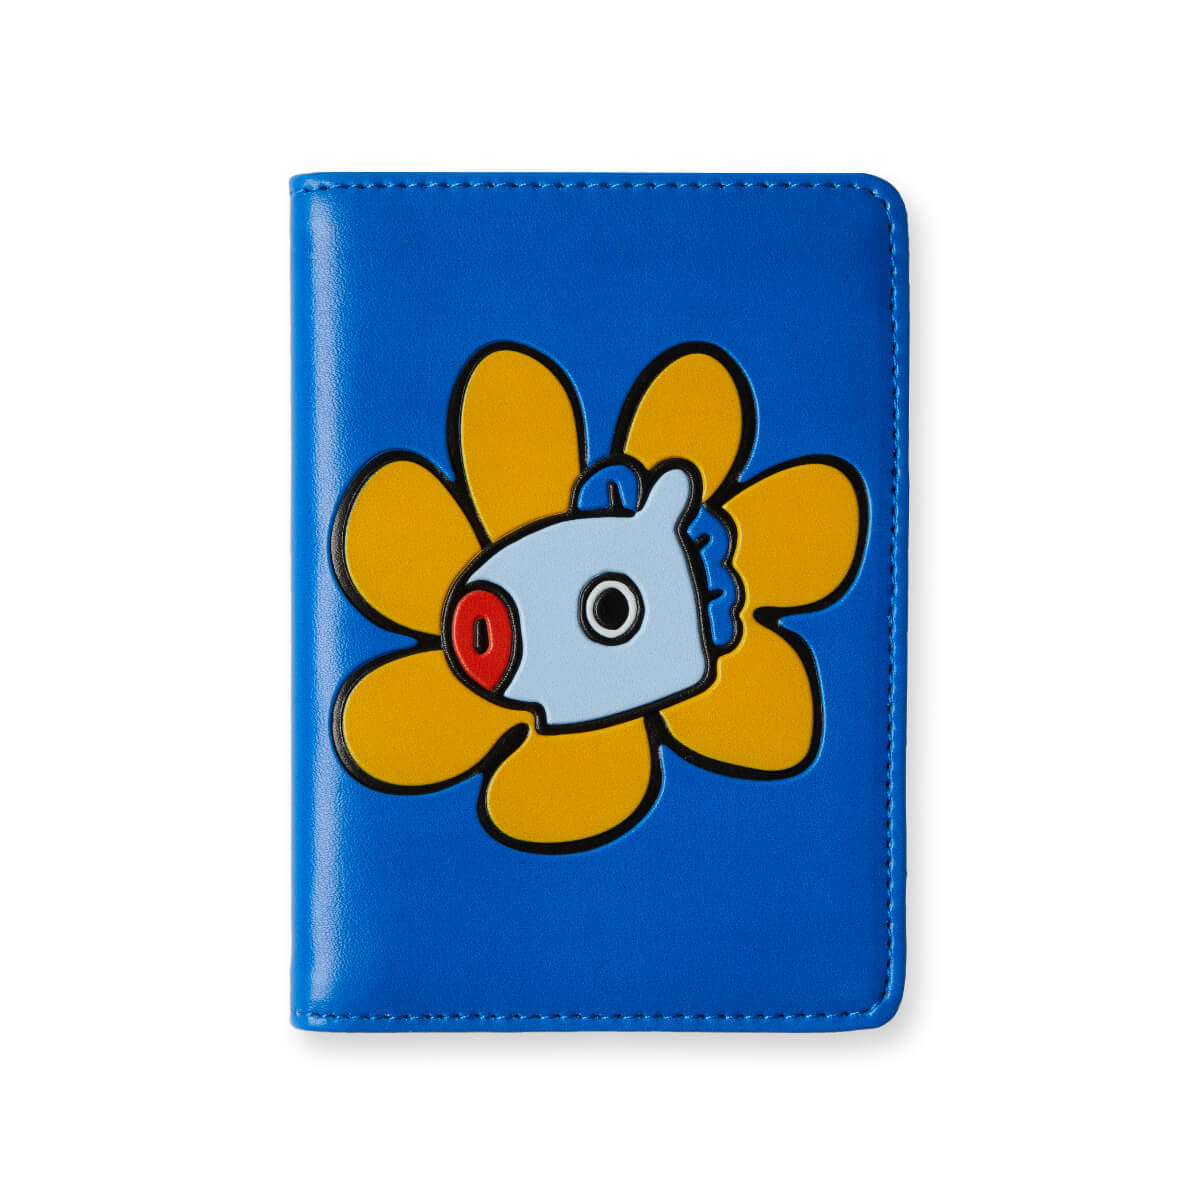 BT21 MANG Flower Graphic Passport Cover